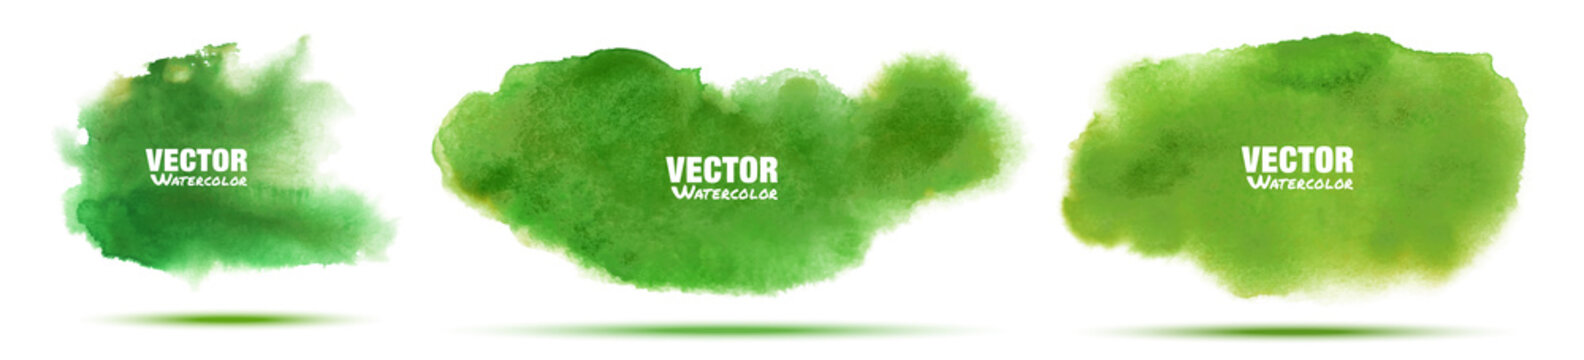 Green abstract hand drawn watercolor background set. Watercolor color splashing on the paper. Vector illustration.